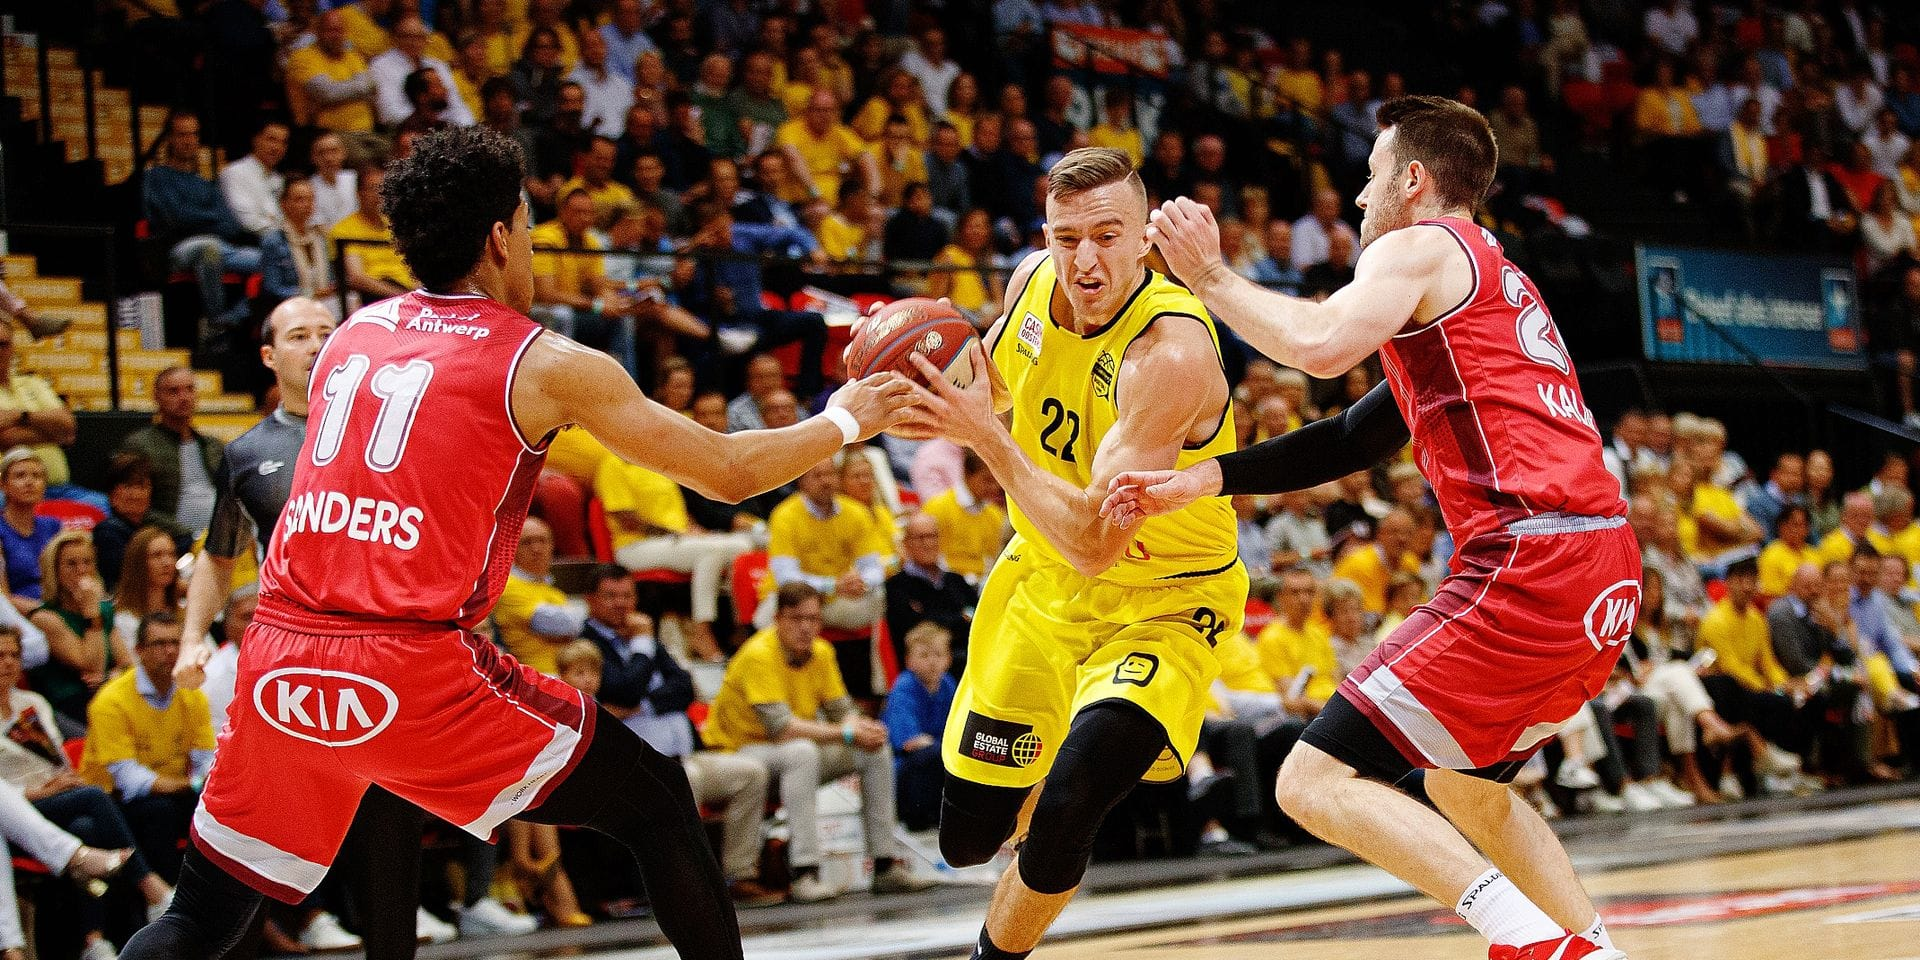 Oostende's Vincent Kesteloot and Antwerp's Dave Dudzinski fight for the ball during the basketball match between BC Oostende and Antwerp Giants, Sunday 09 June 2019 in Oostende, the second game of a possible 5 in the finals of the playoffs of the 'EuroMillions League' Belgian first division basket competition. BELGA PHOTO KURT DESPLENTER